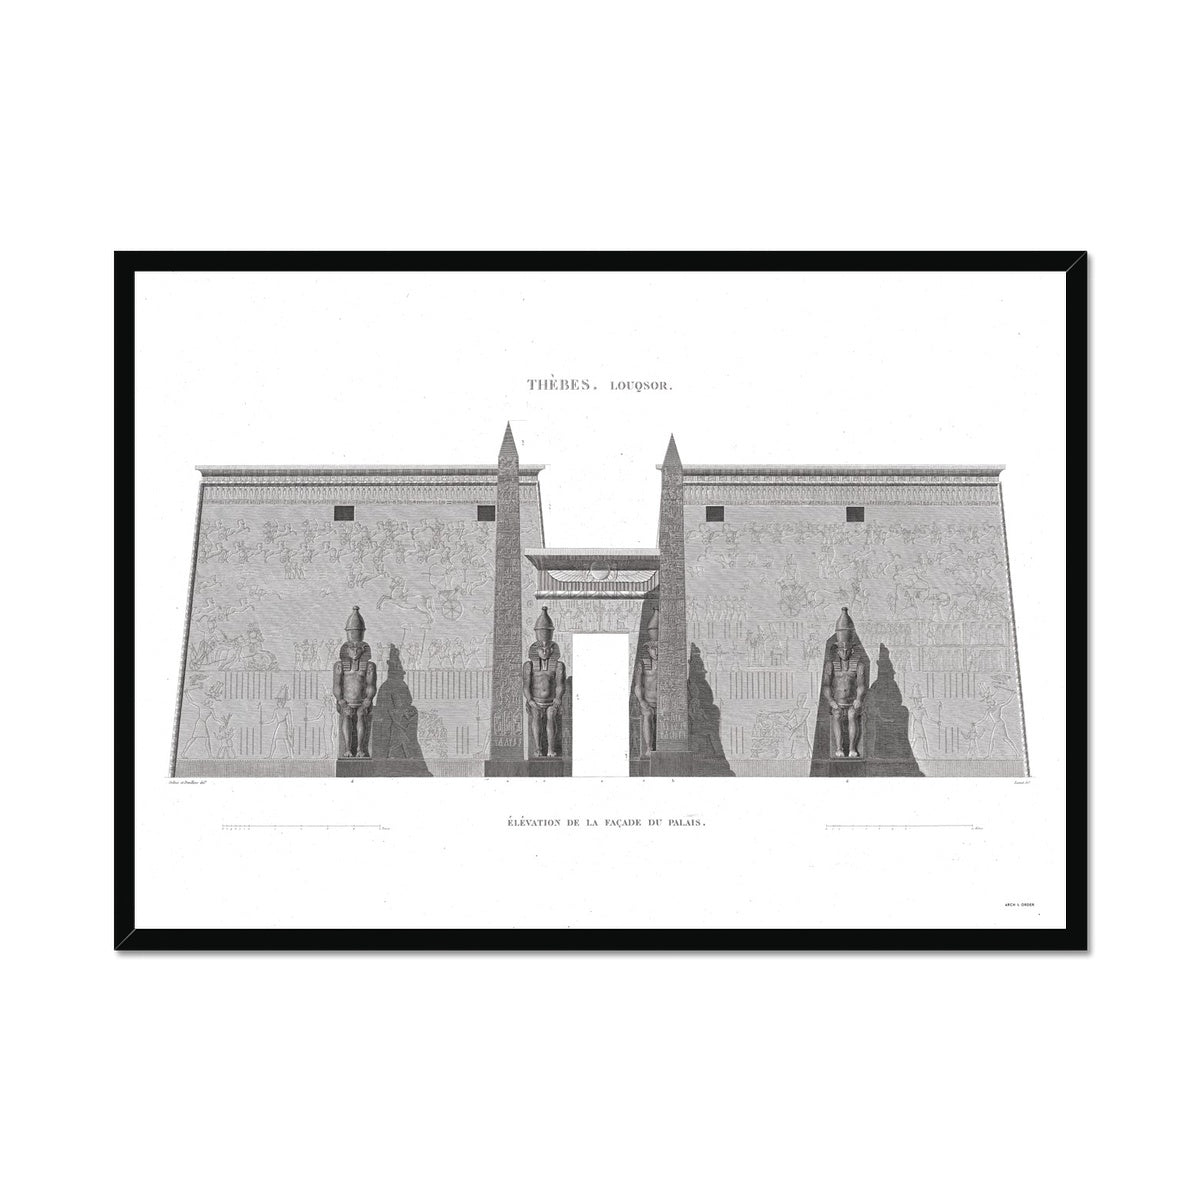 Primary Elevation of the Palace - Luxor - Thebes Egypt -  Framed Print